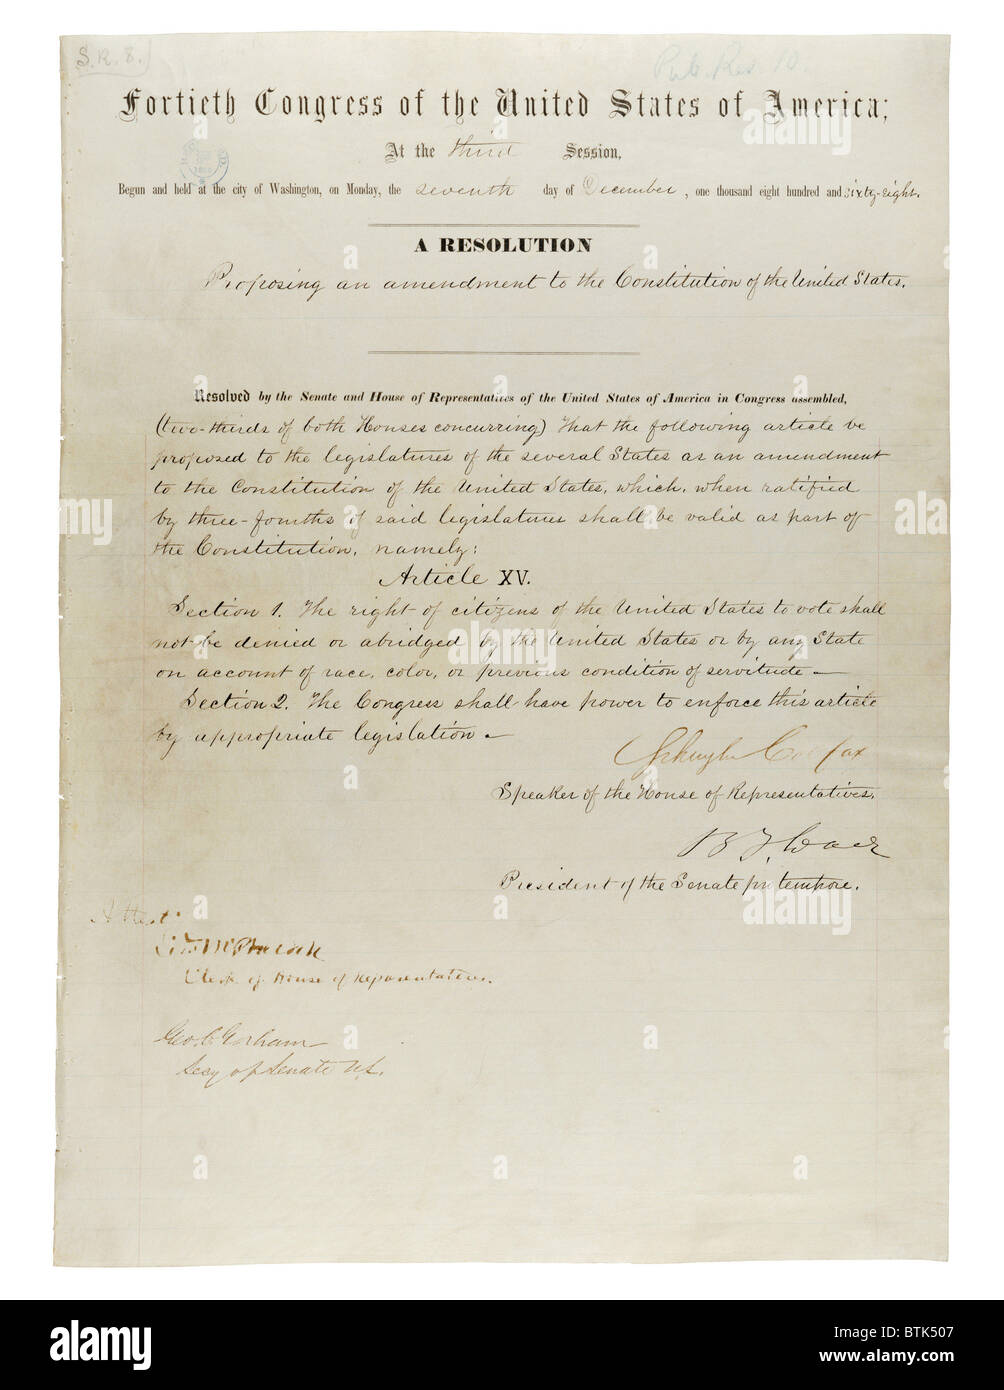 15th Amendment to the U.S. Constitution: Voting Rights (1870)Passed by Congress February 26, 1869, and ratified - Stock Image